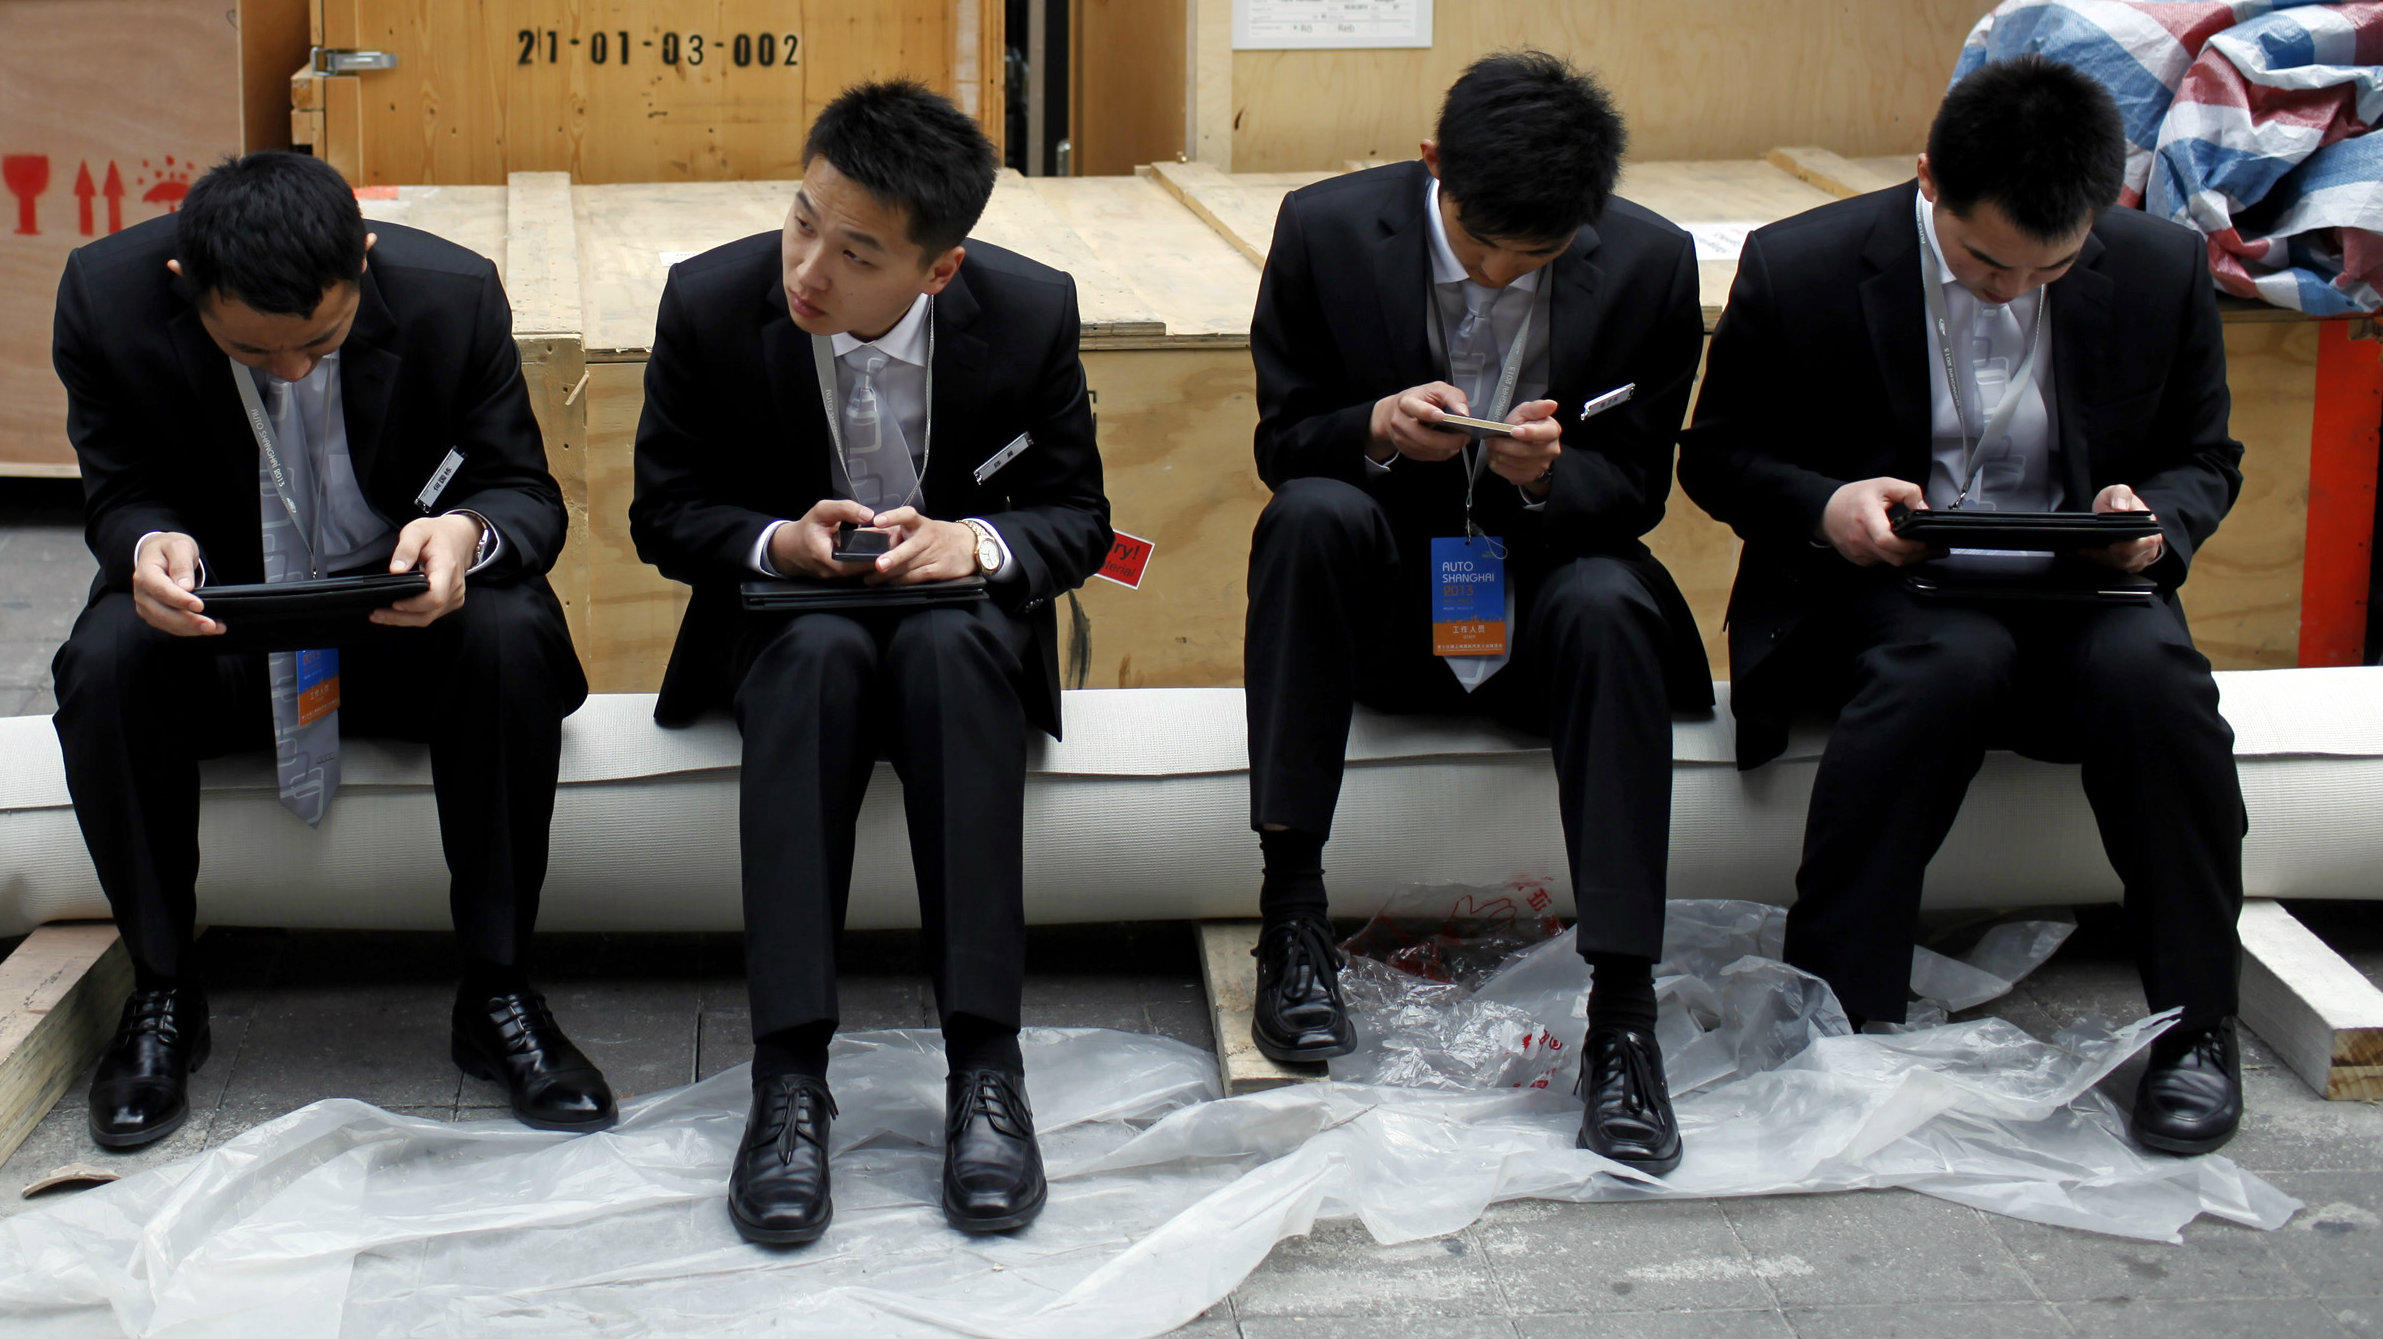 A row of people looking at their smartphones and tablets